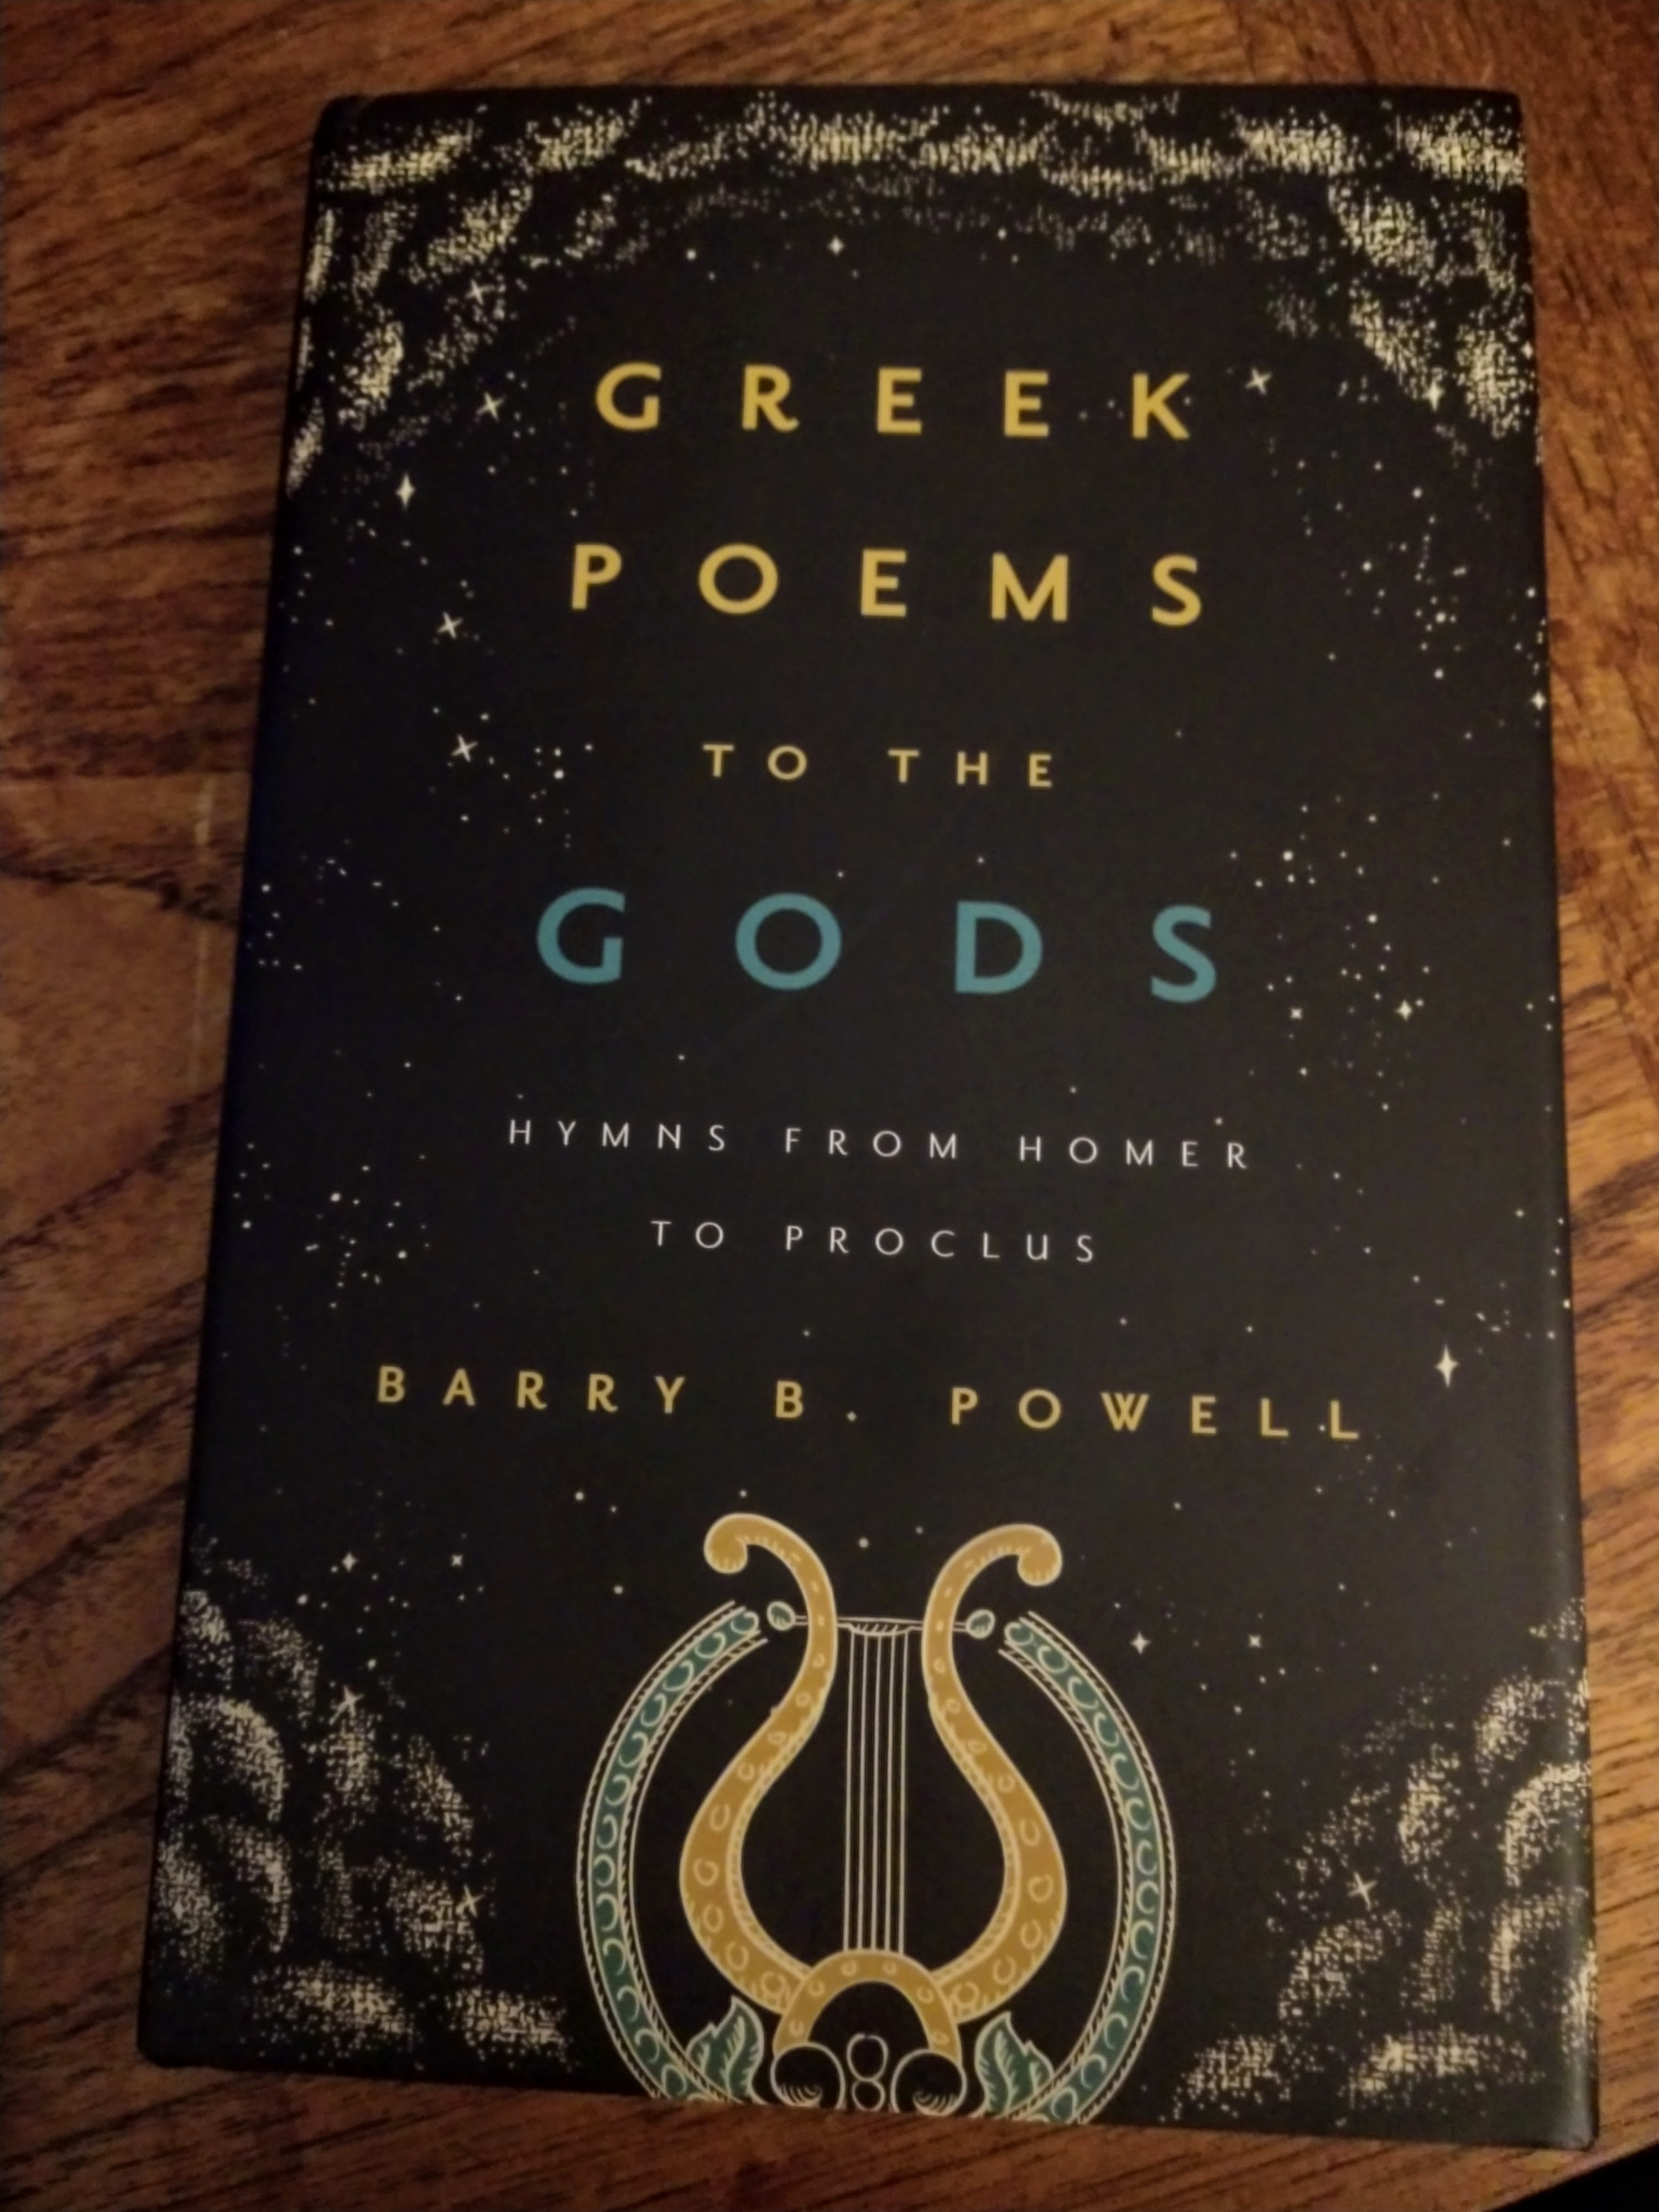 Greek Poems to the Gods by Barry Powell